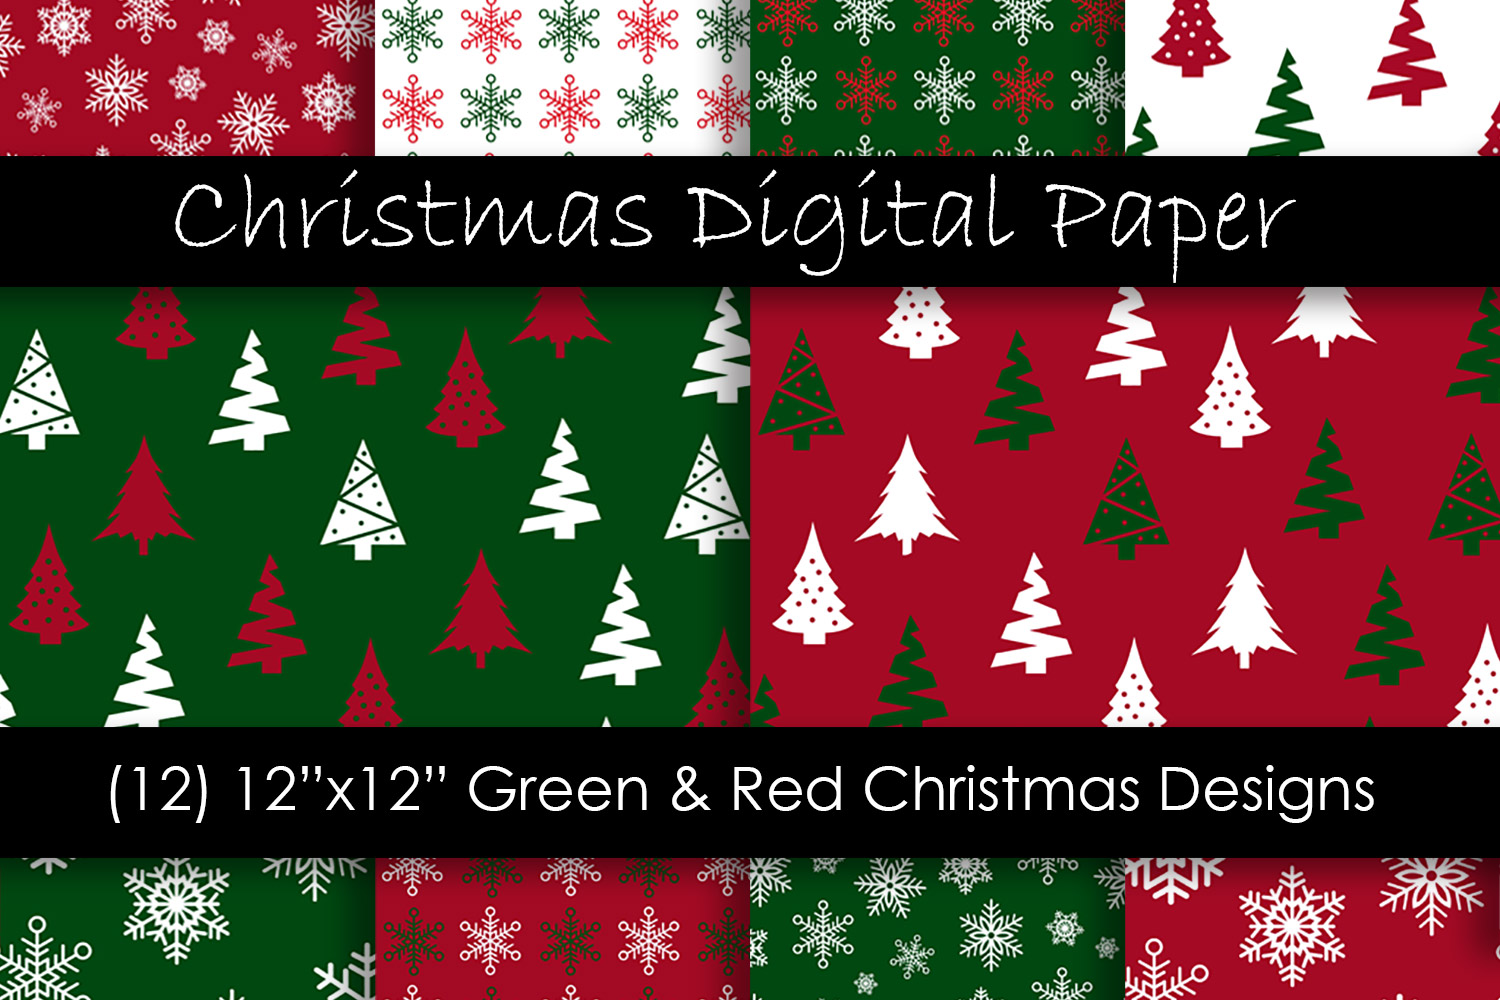 Download Free Christmas Digital Paper Red And Green Graphic By Gjsart for Cricut Explore, Silhouette and other cutting machines.